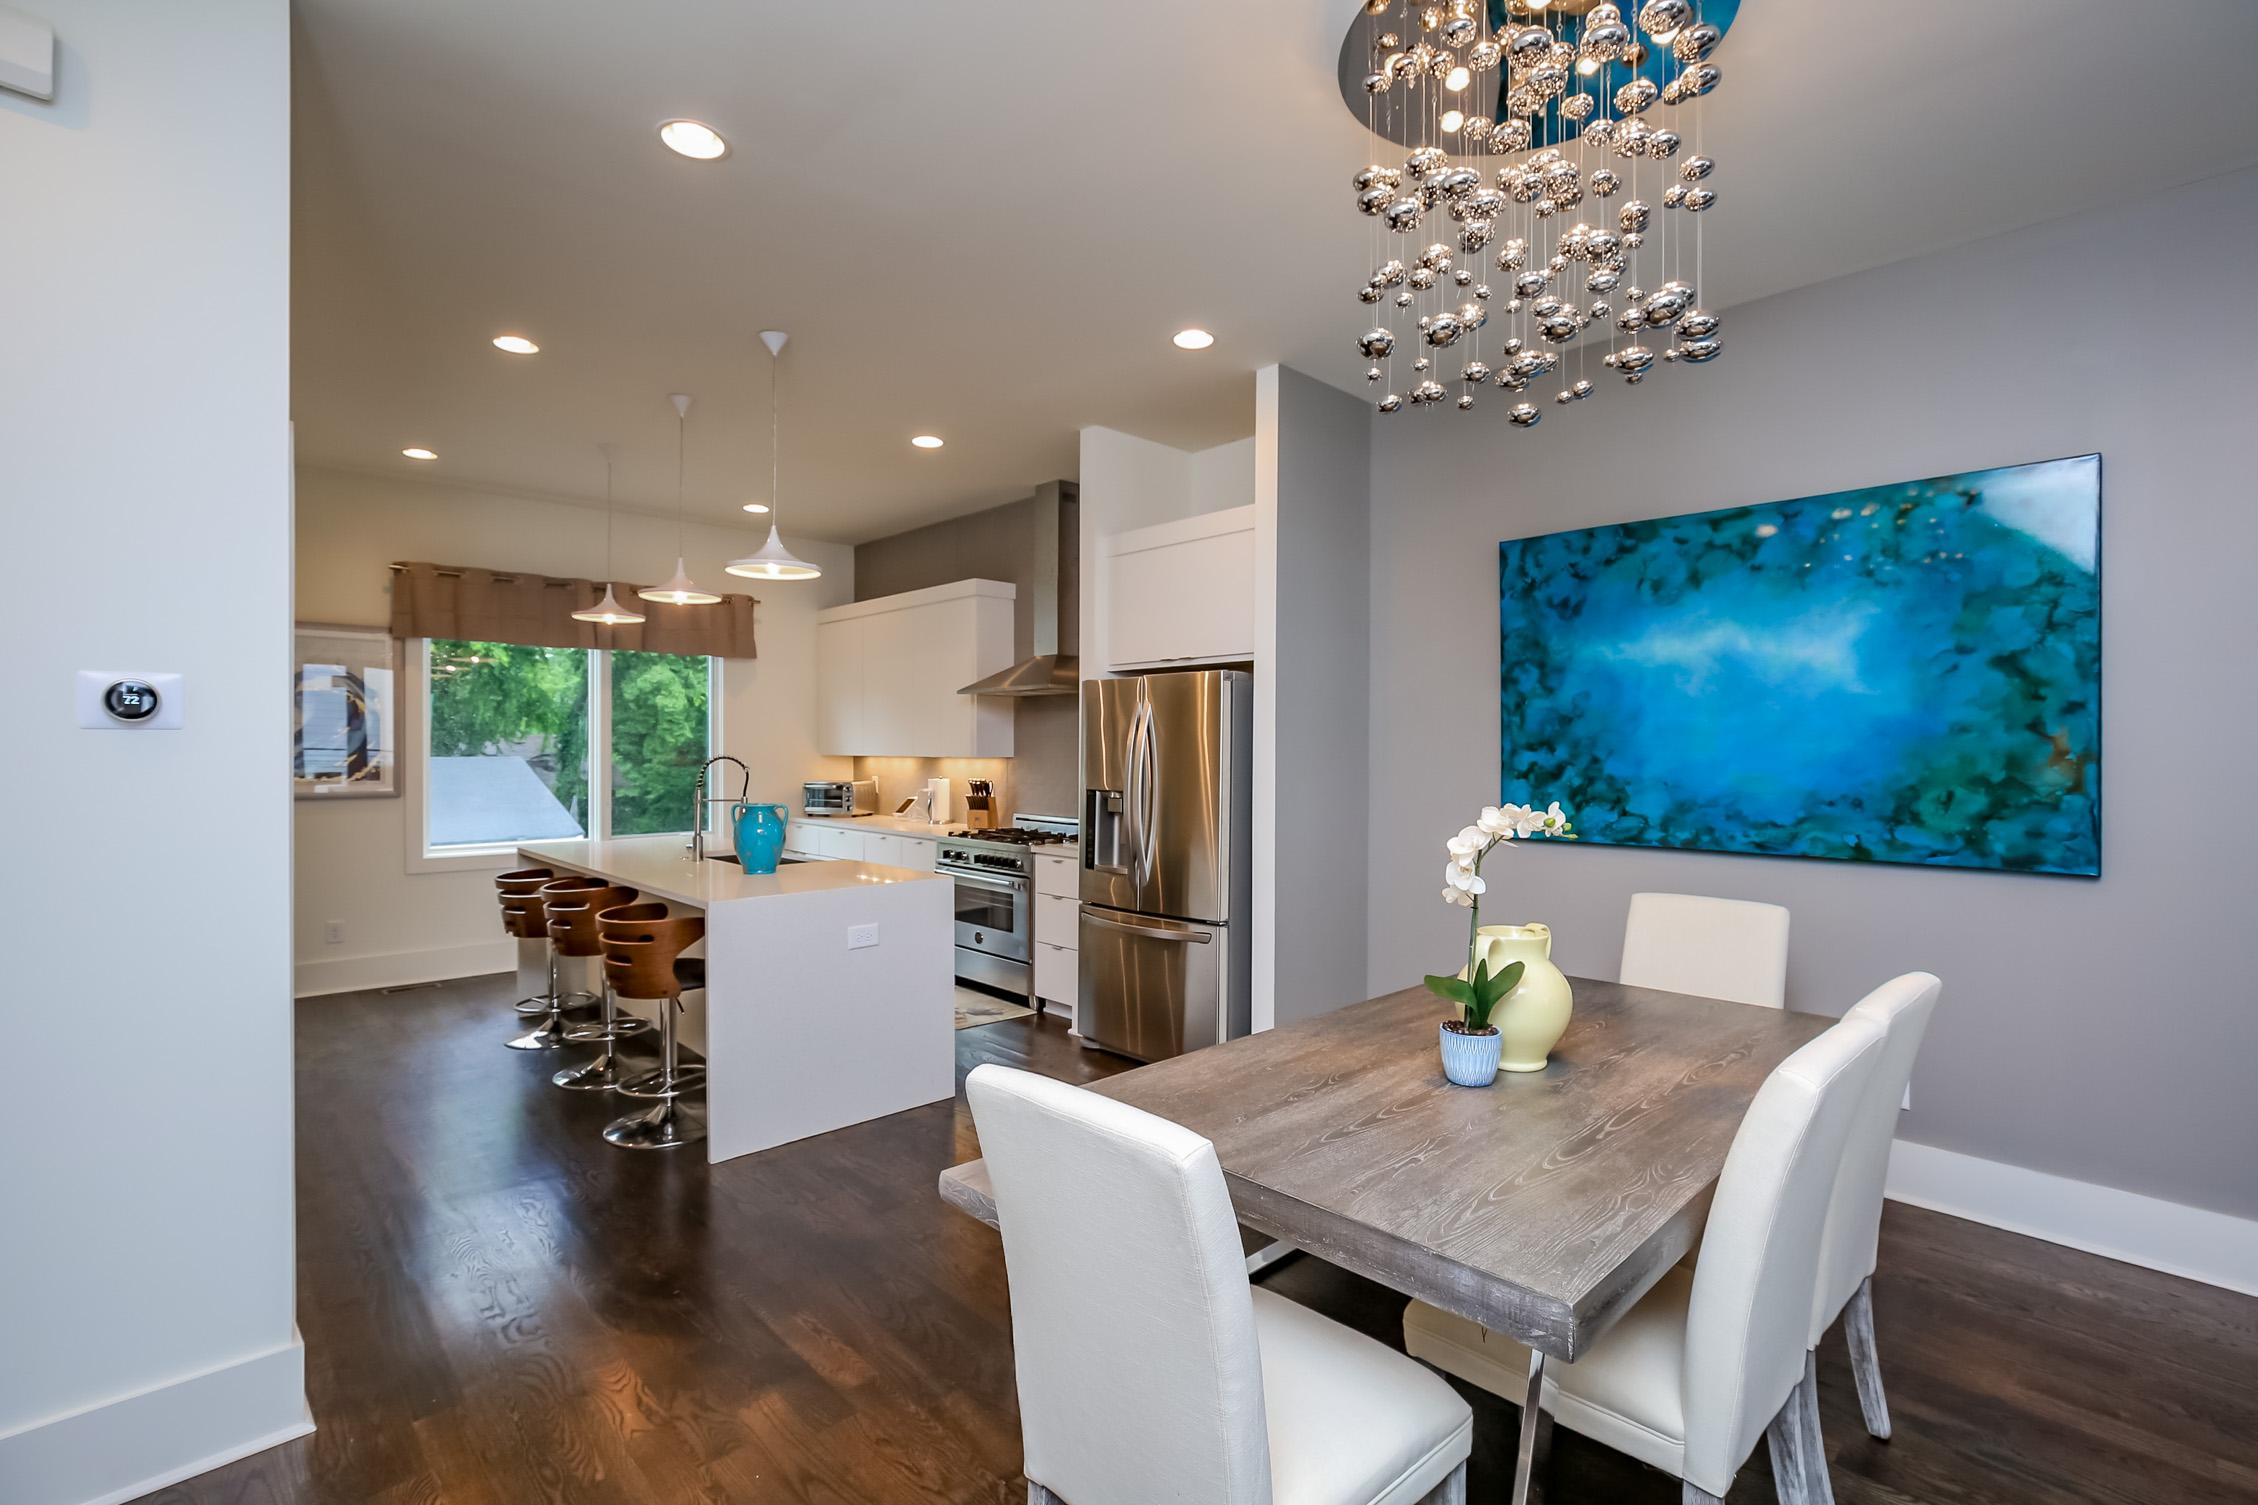 The chic dining space is open to the kitchen.